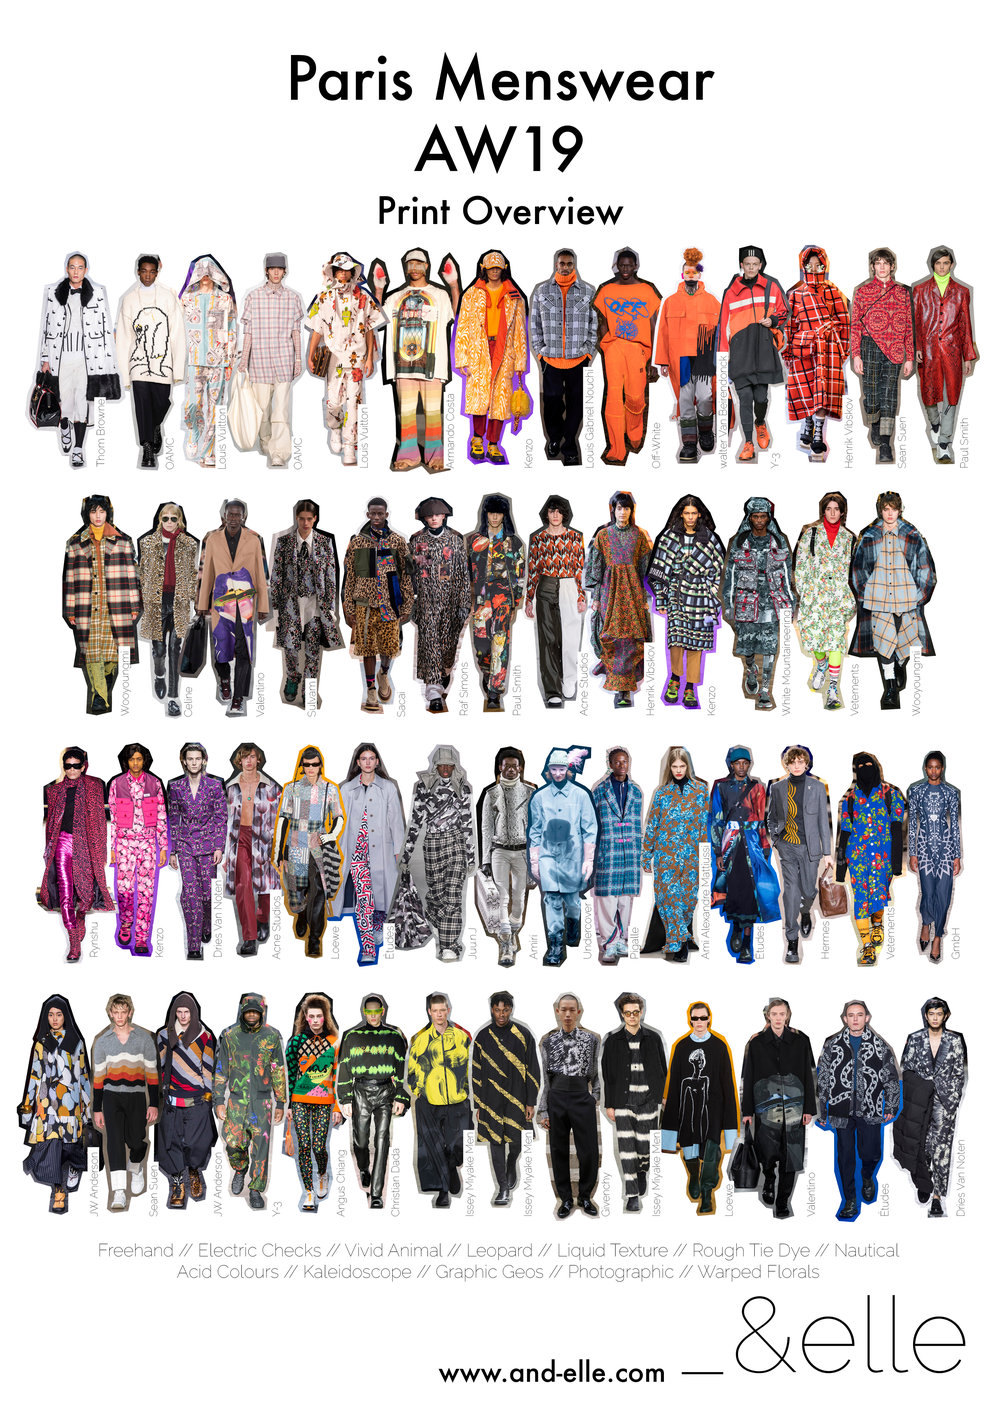 Trend Report Service Paris Fashion Week Print Overview